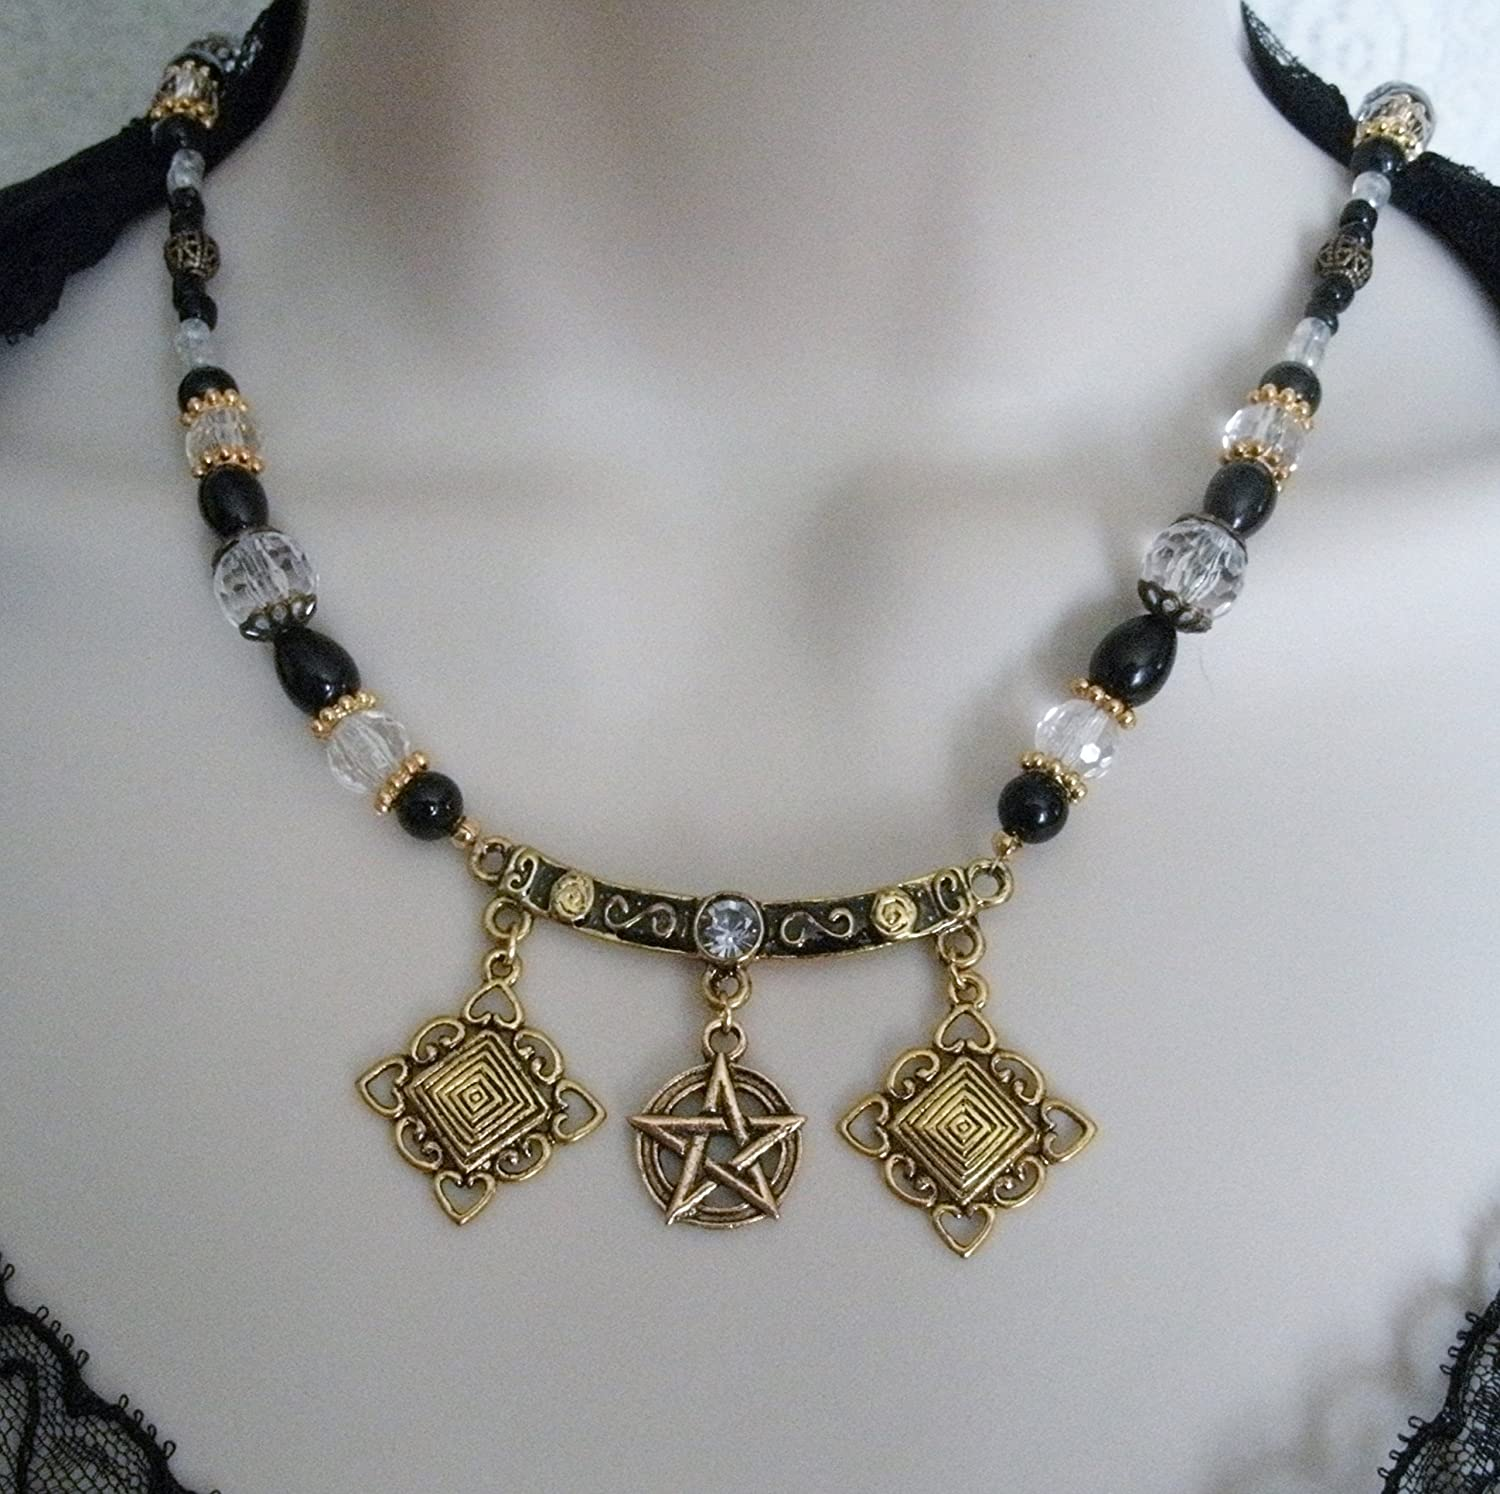 wiccan witch handfasting handmade jewelry Triple Moon Necklace magic goddess pagan witchcraft wicca